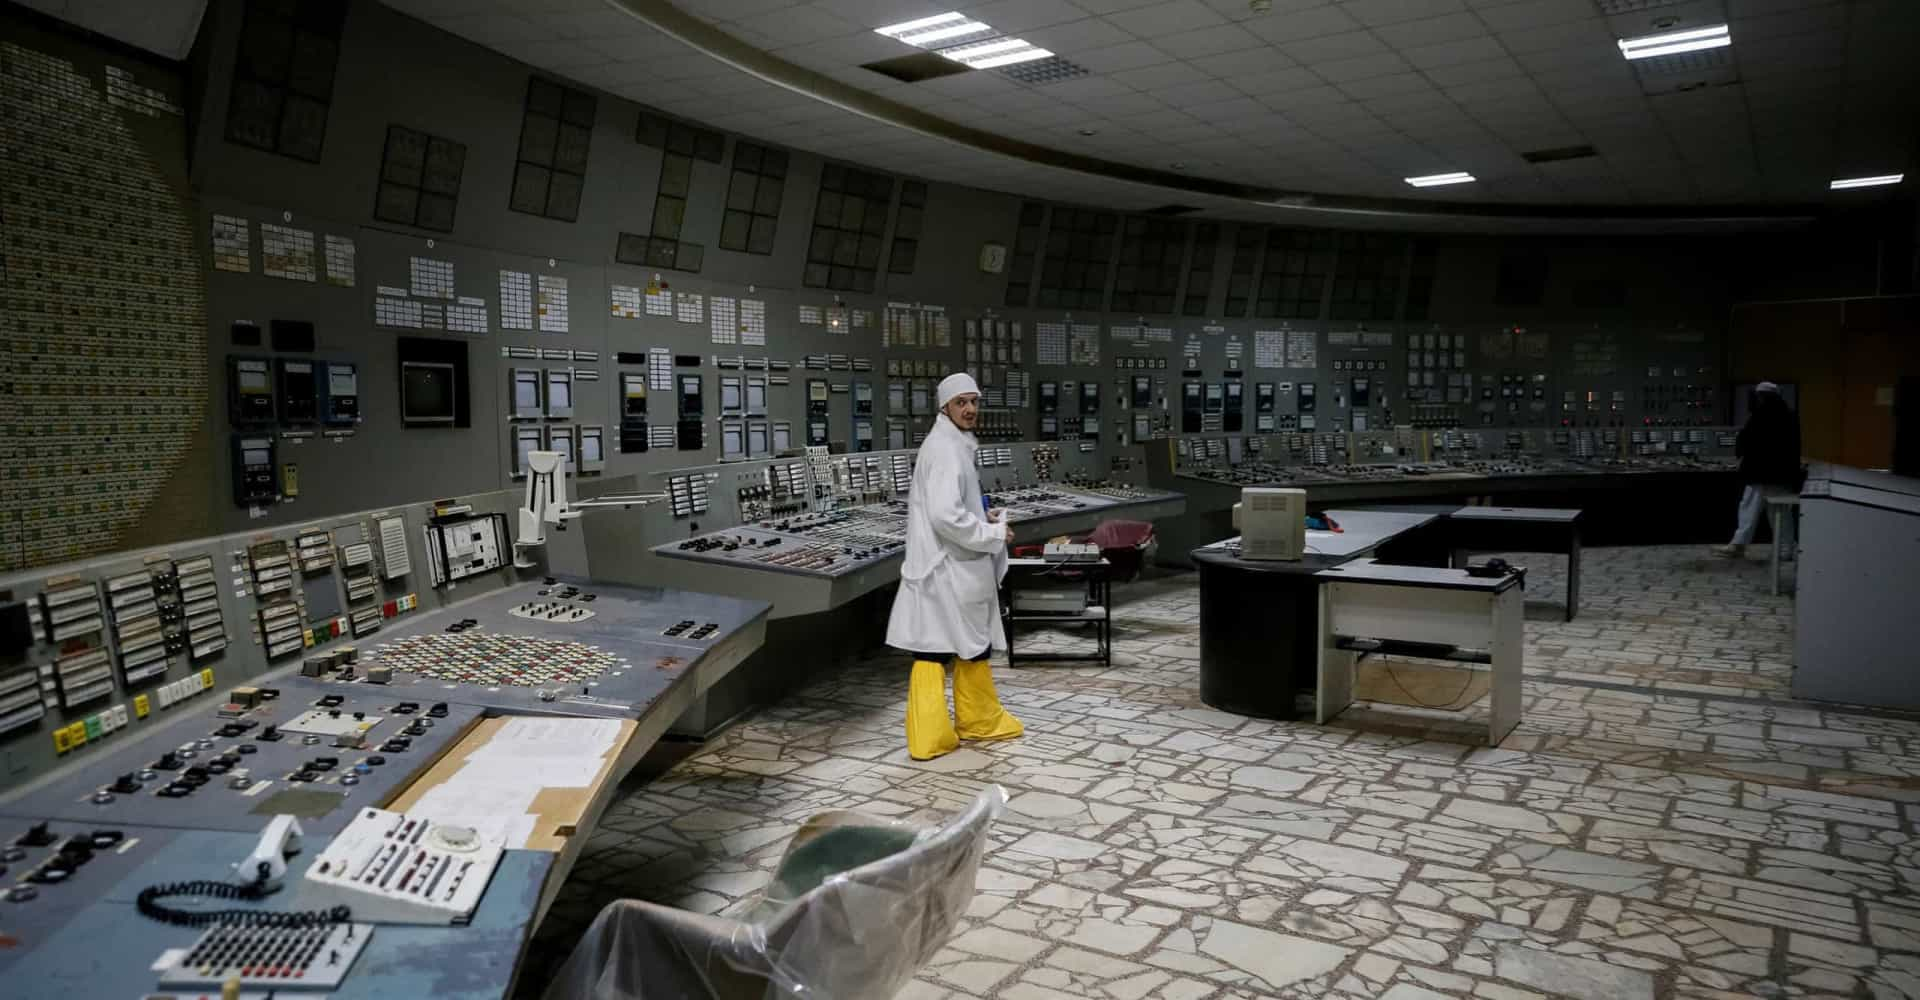 Chernobyl: what remains 33 years later